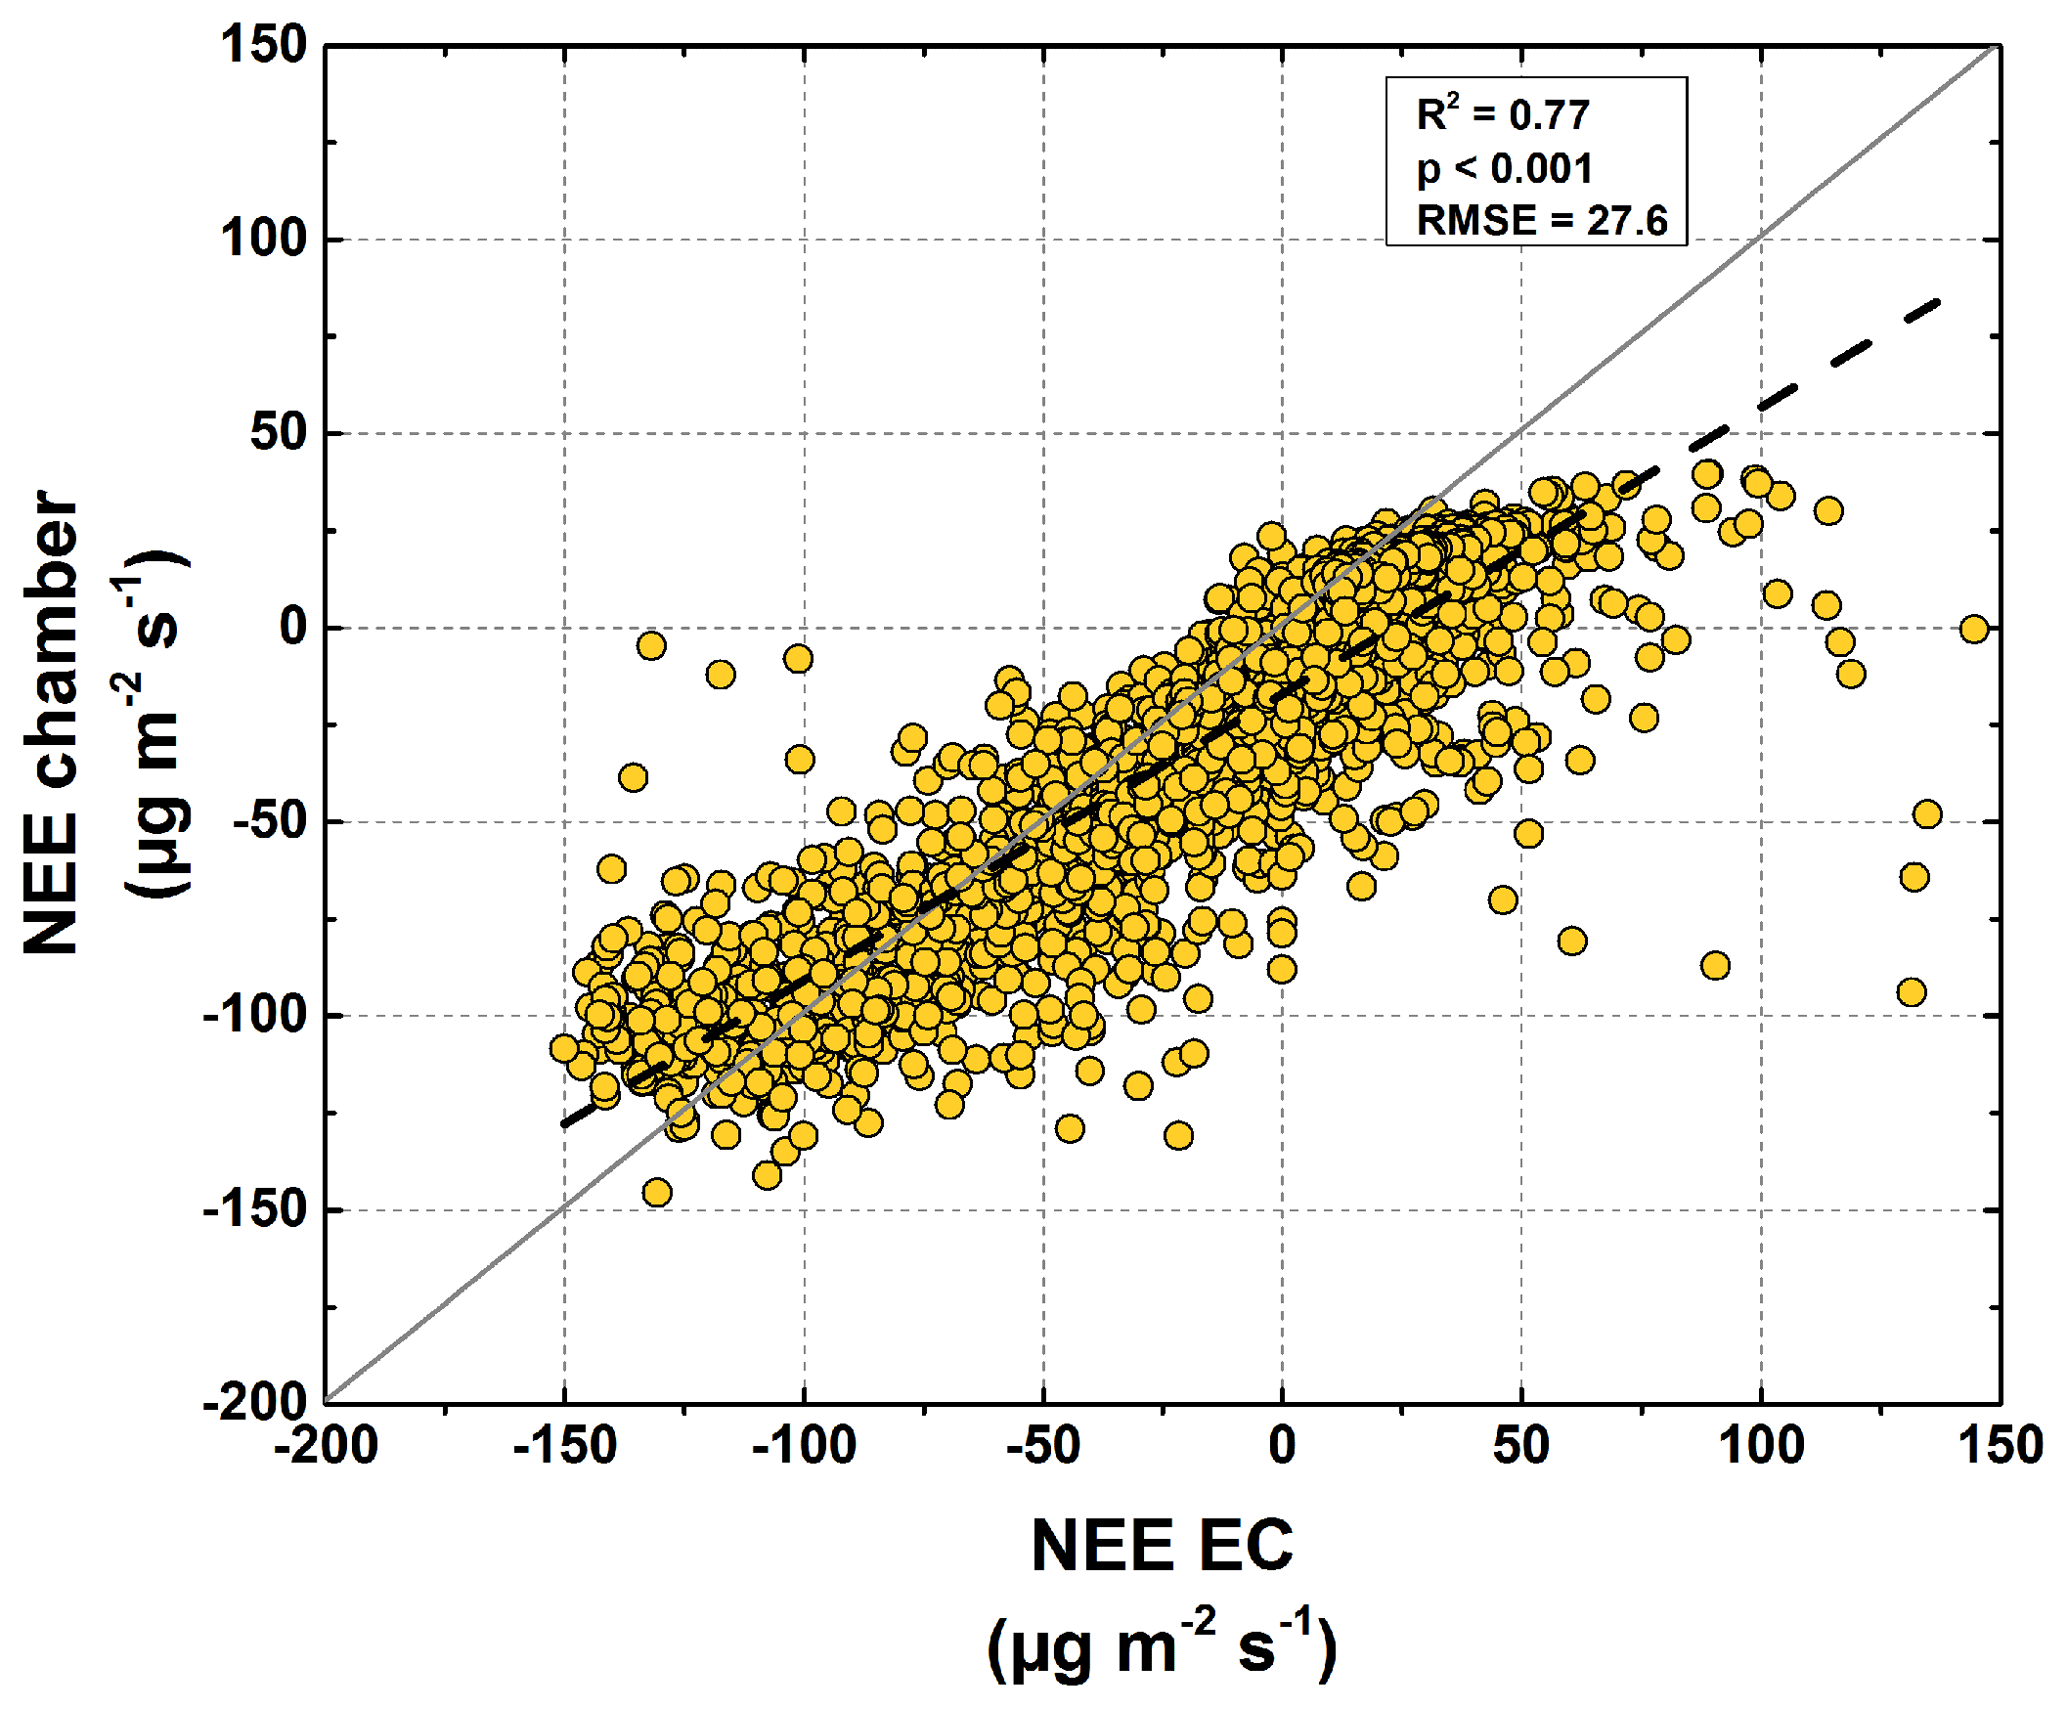 BG - Partitioning net ecosystem exchange of CO2 on the pedon scale